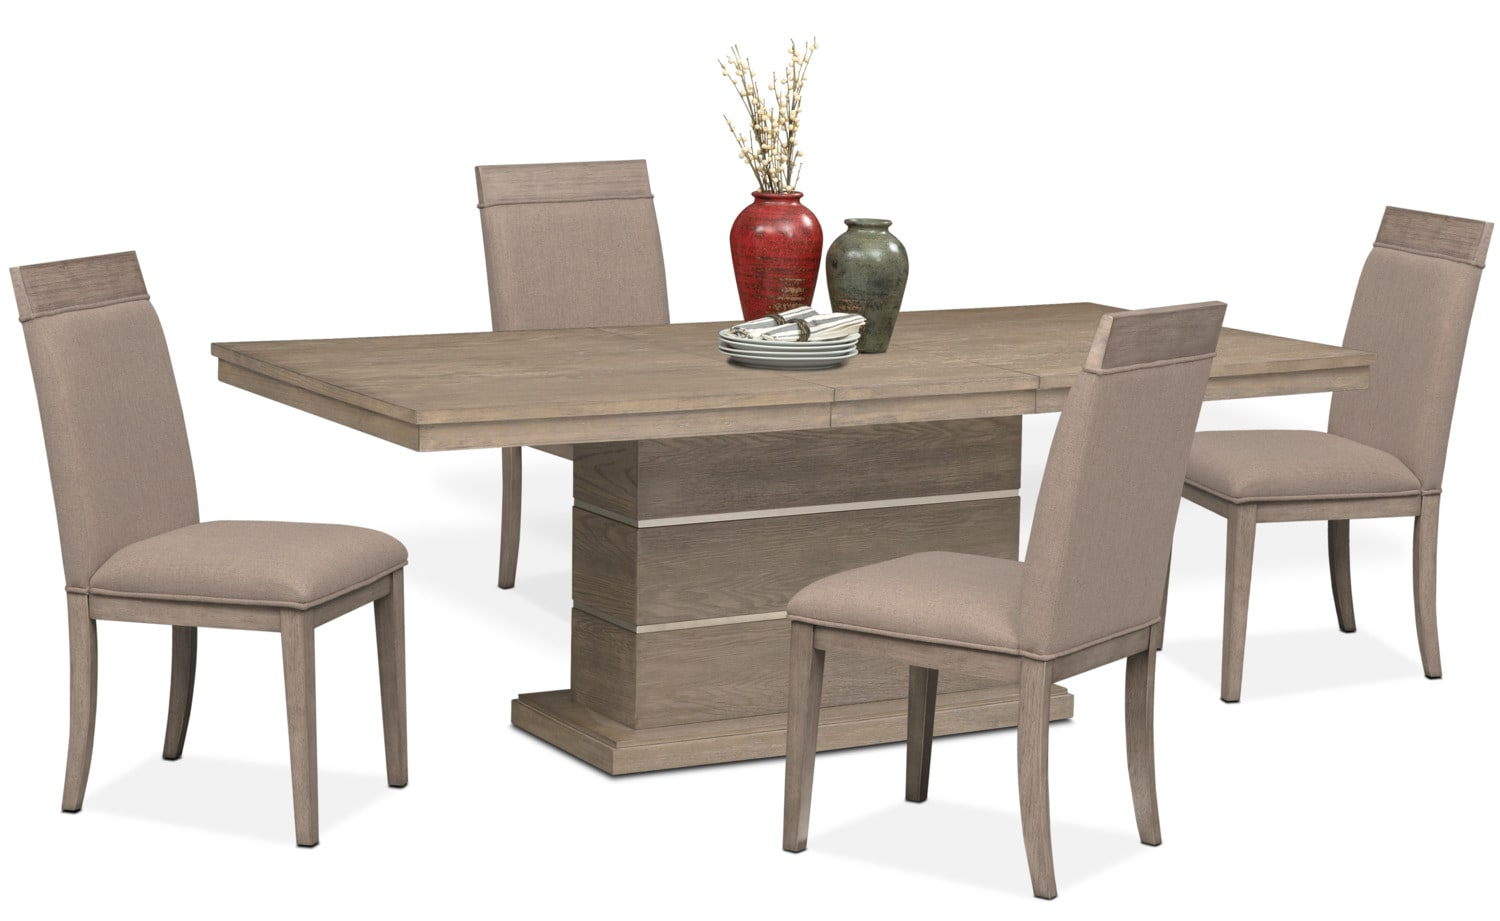 Gavin pedestal table and 4 side chairs graystone for Pedestal dining table and chairs